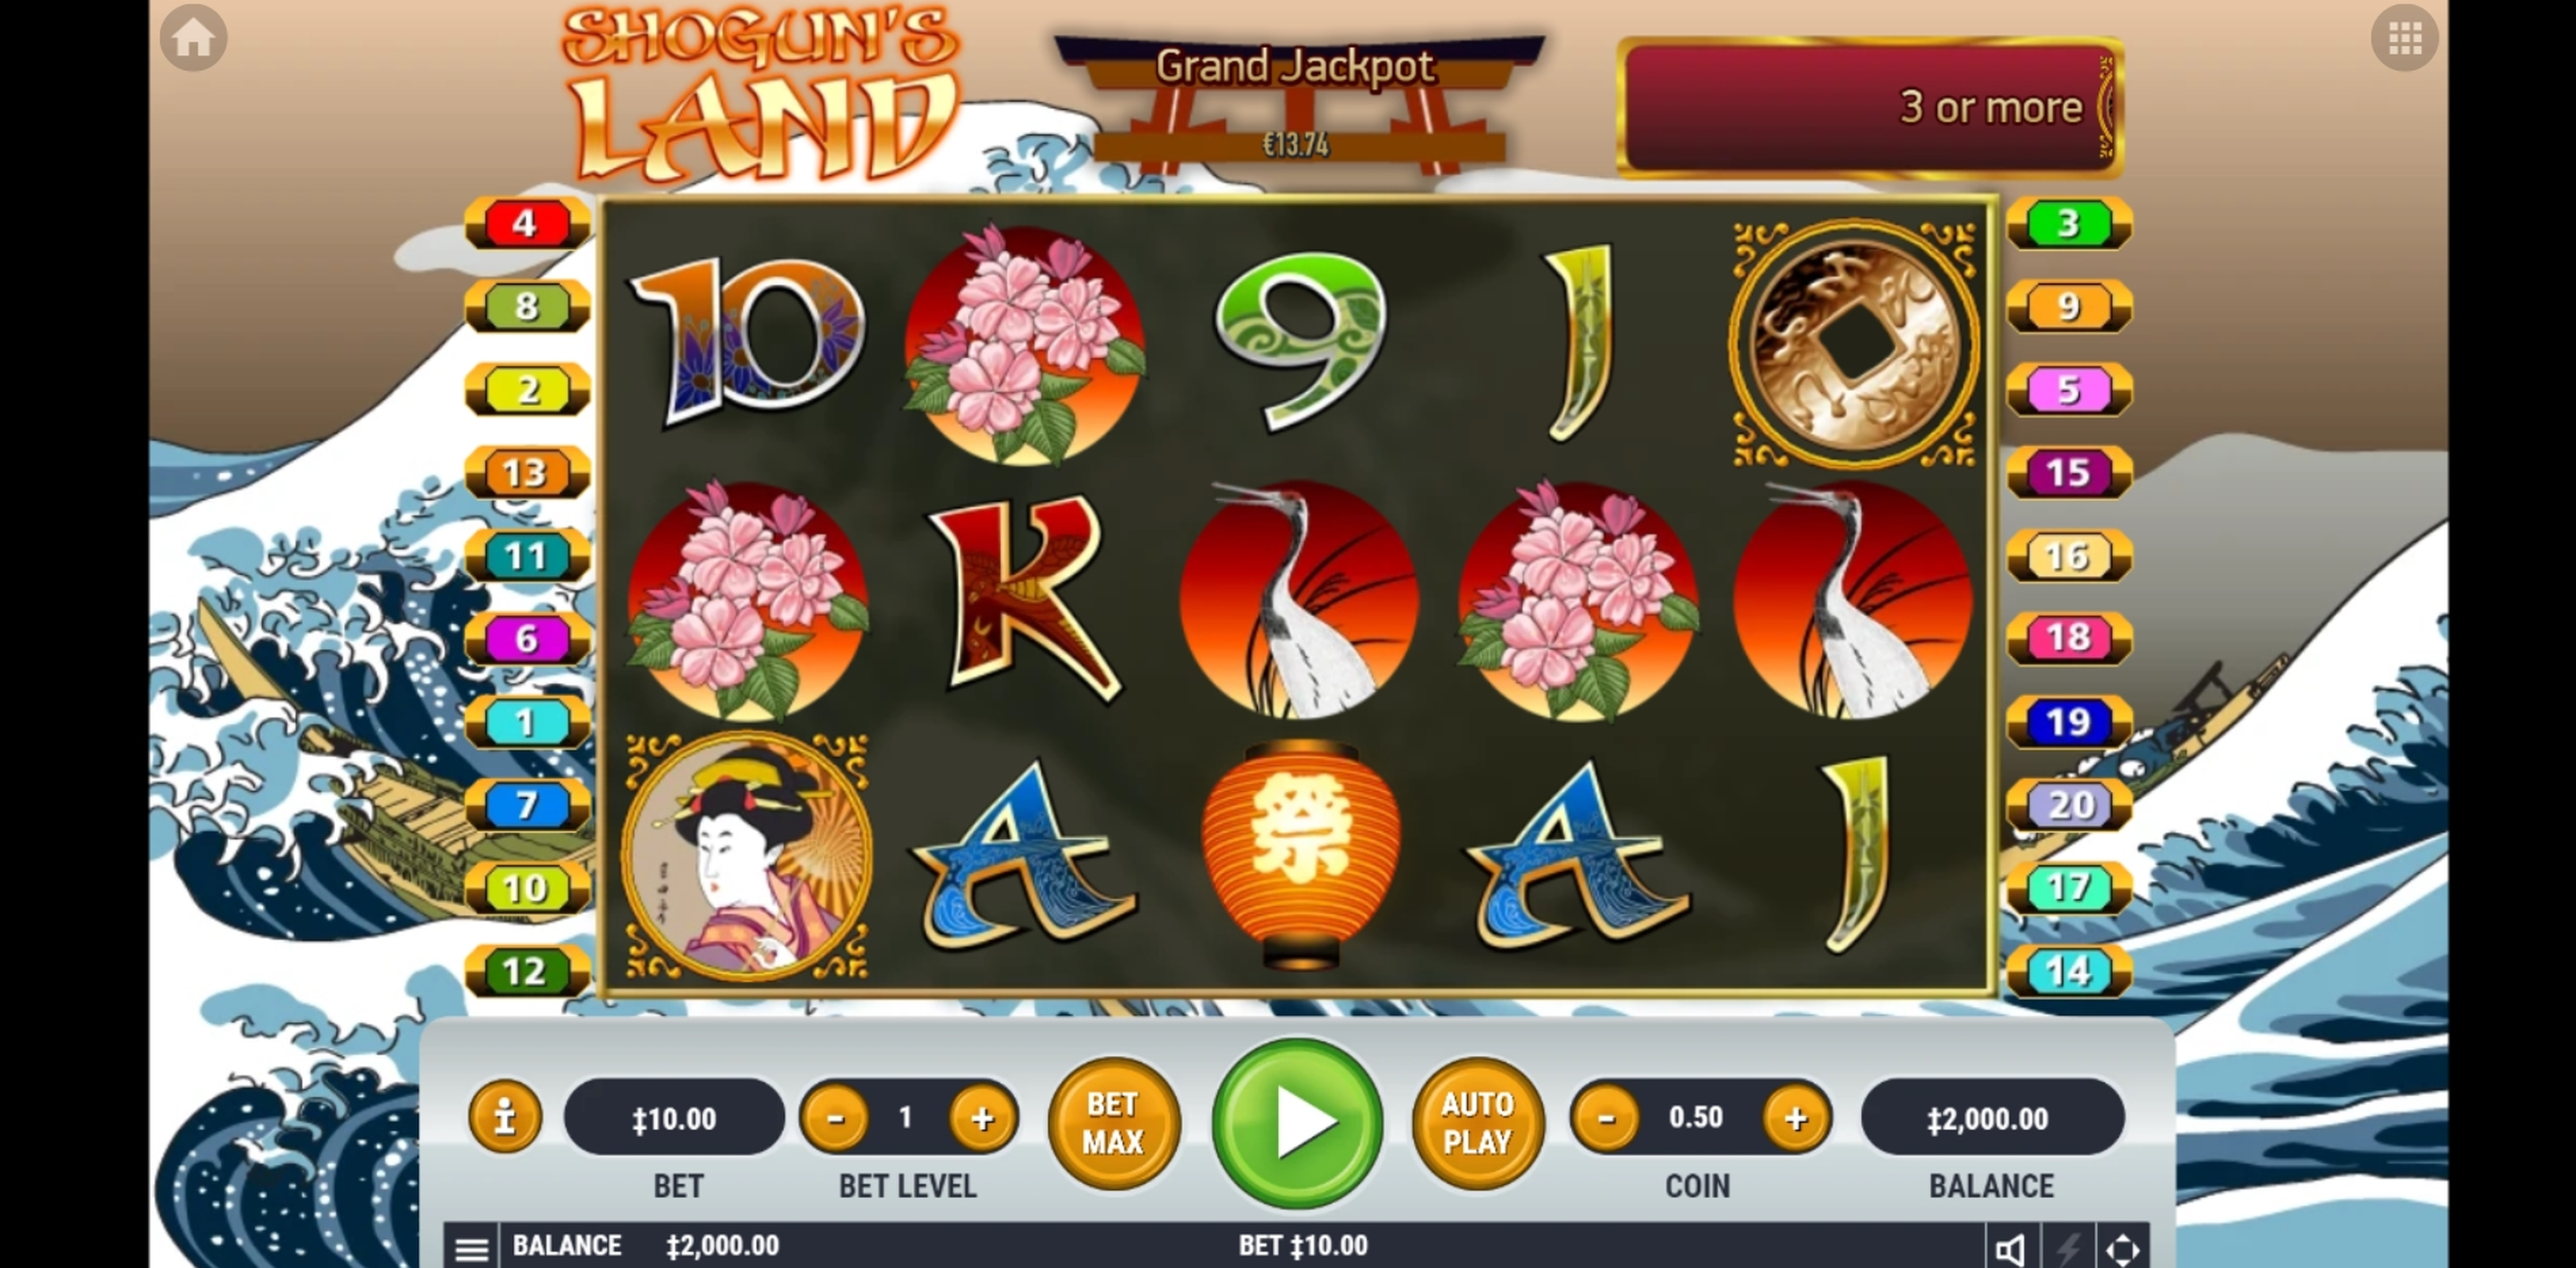 Reels in Shogun's Land Slot Game by Habanero